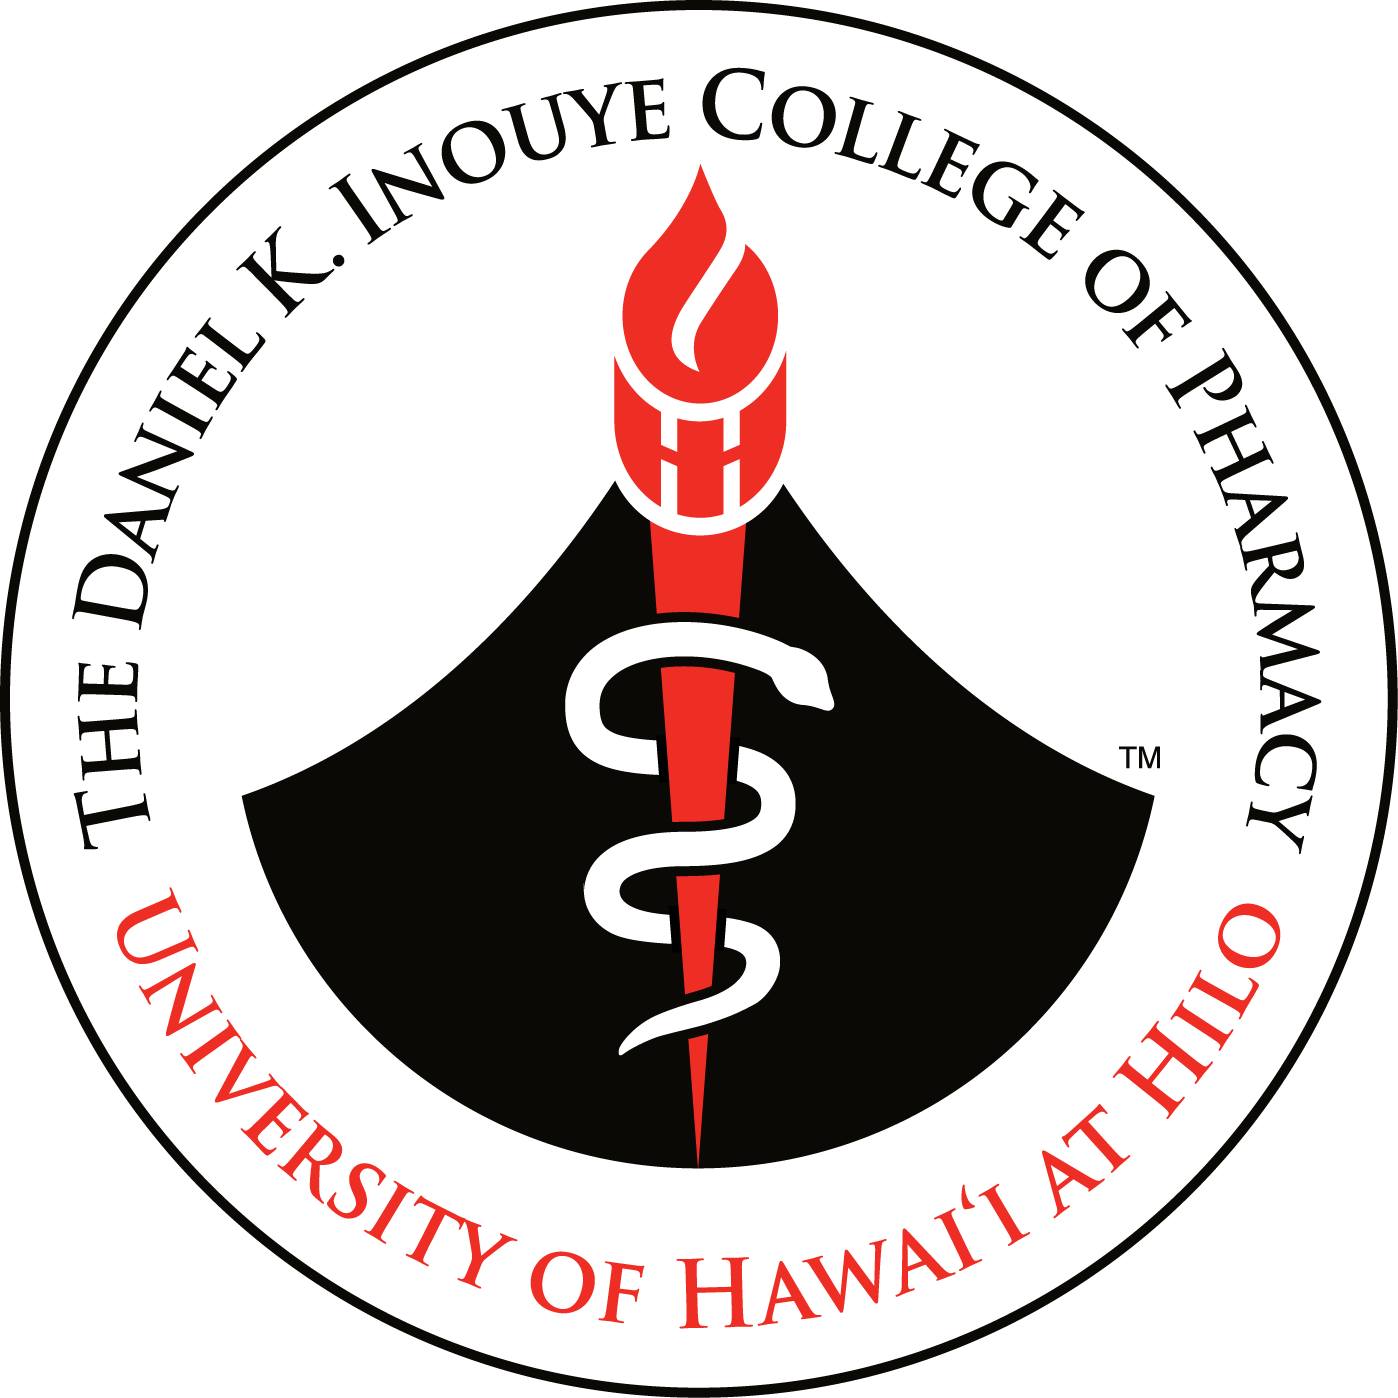 Daniel K  Inouye College of Pharmacy - Wikipedia